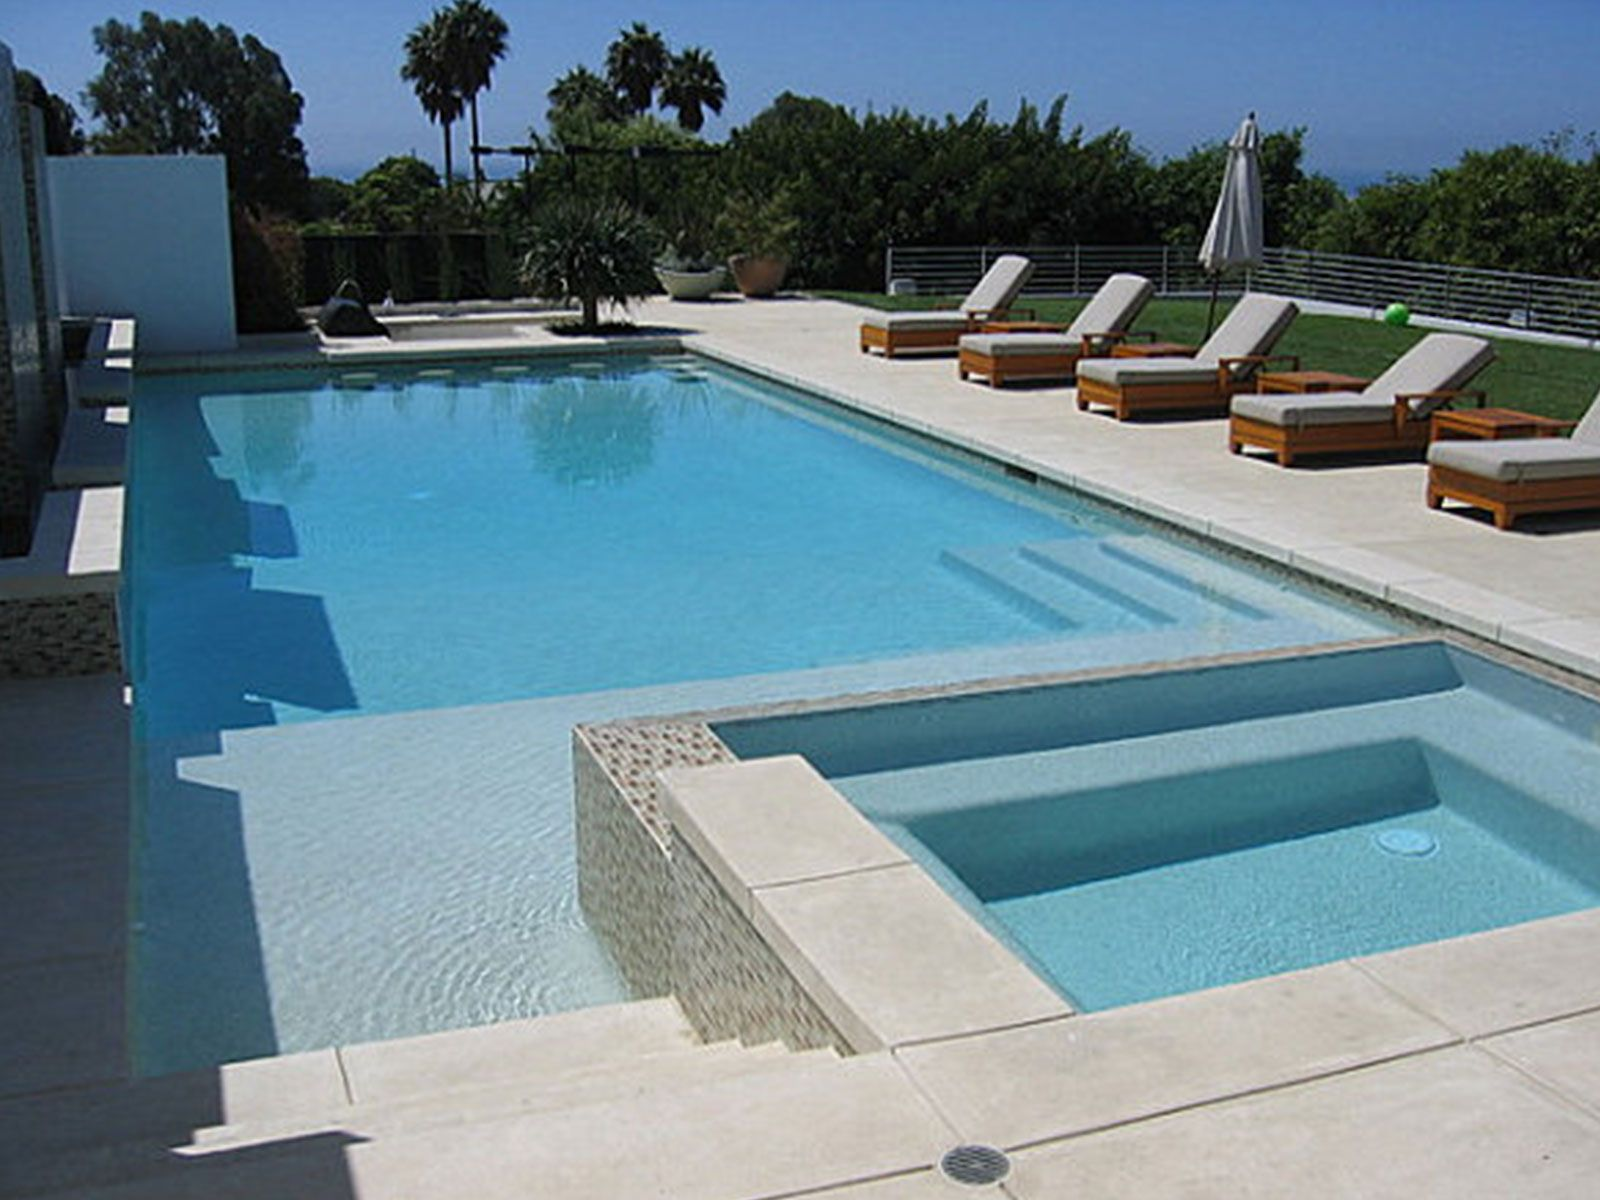 Simple swimming pool design image modern creative swimming for Pool design with hot tub